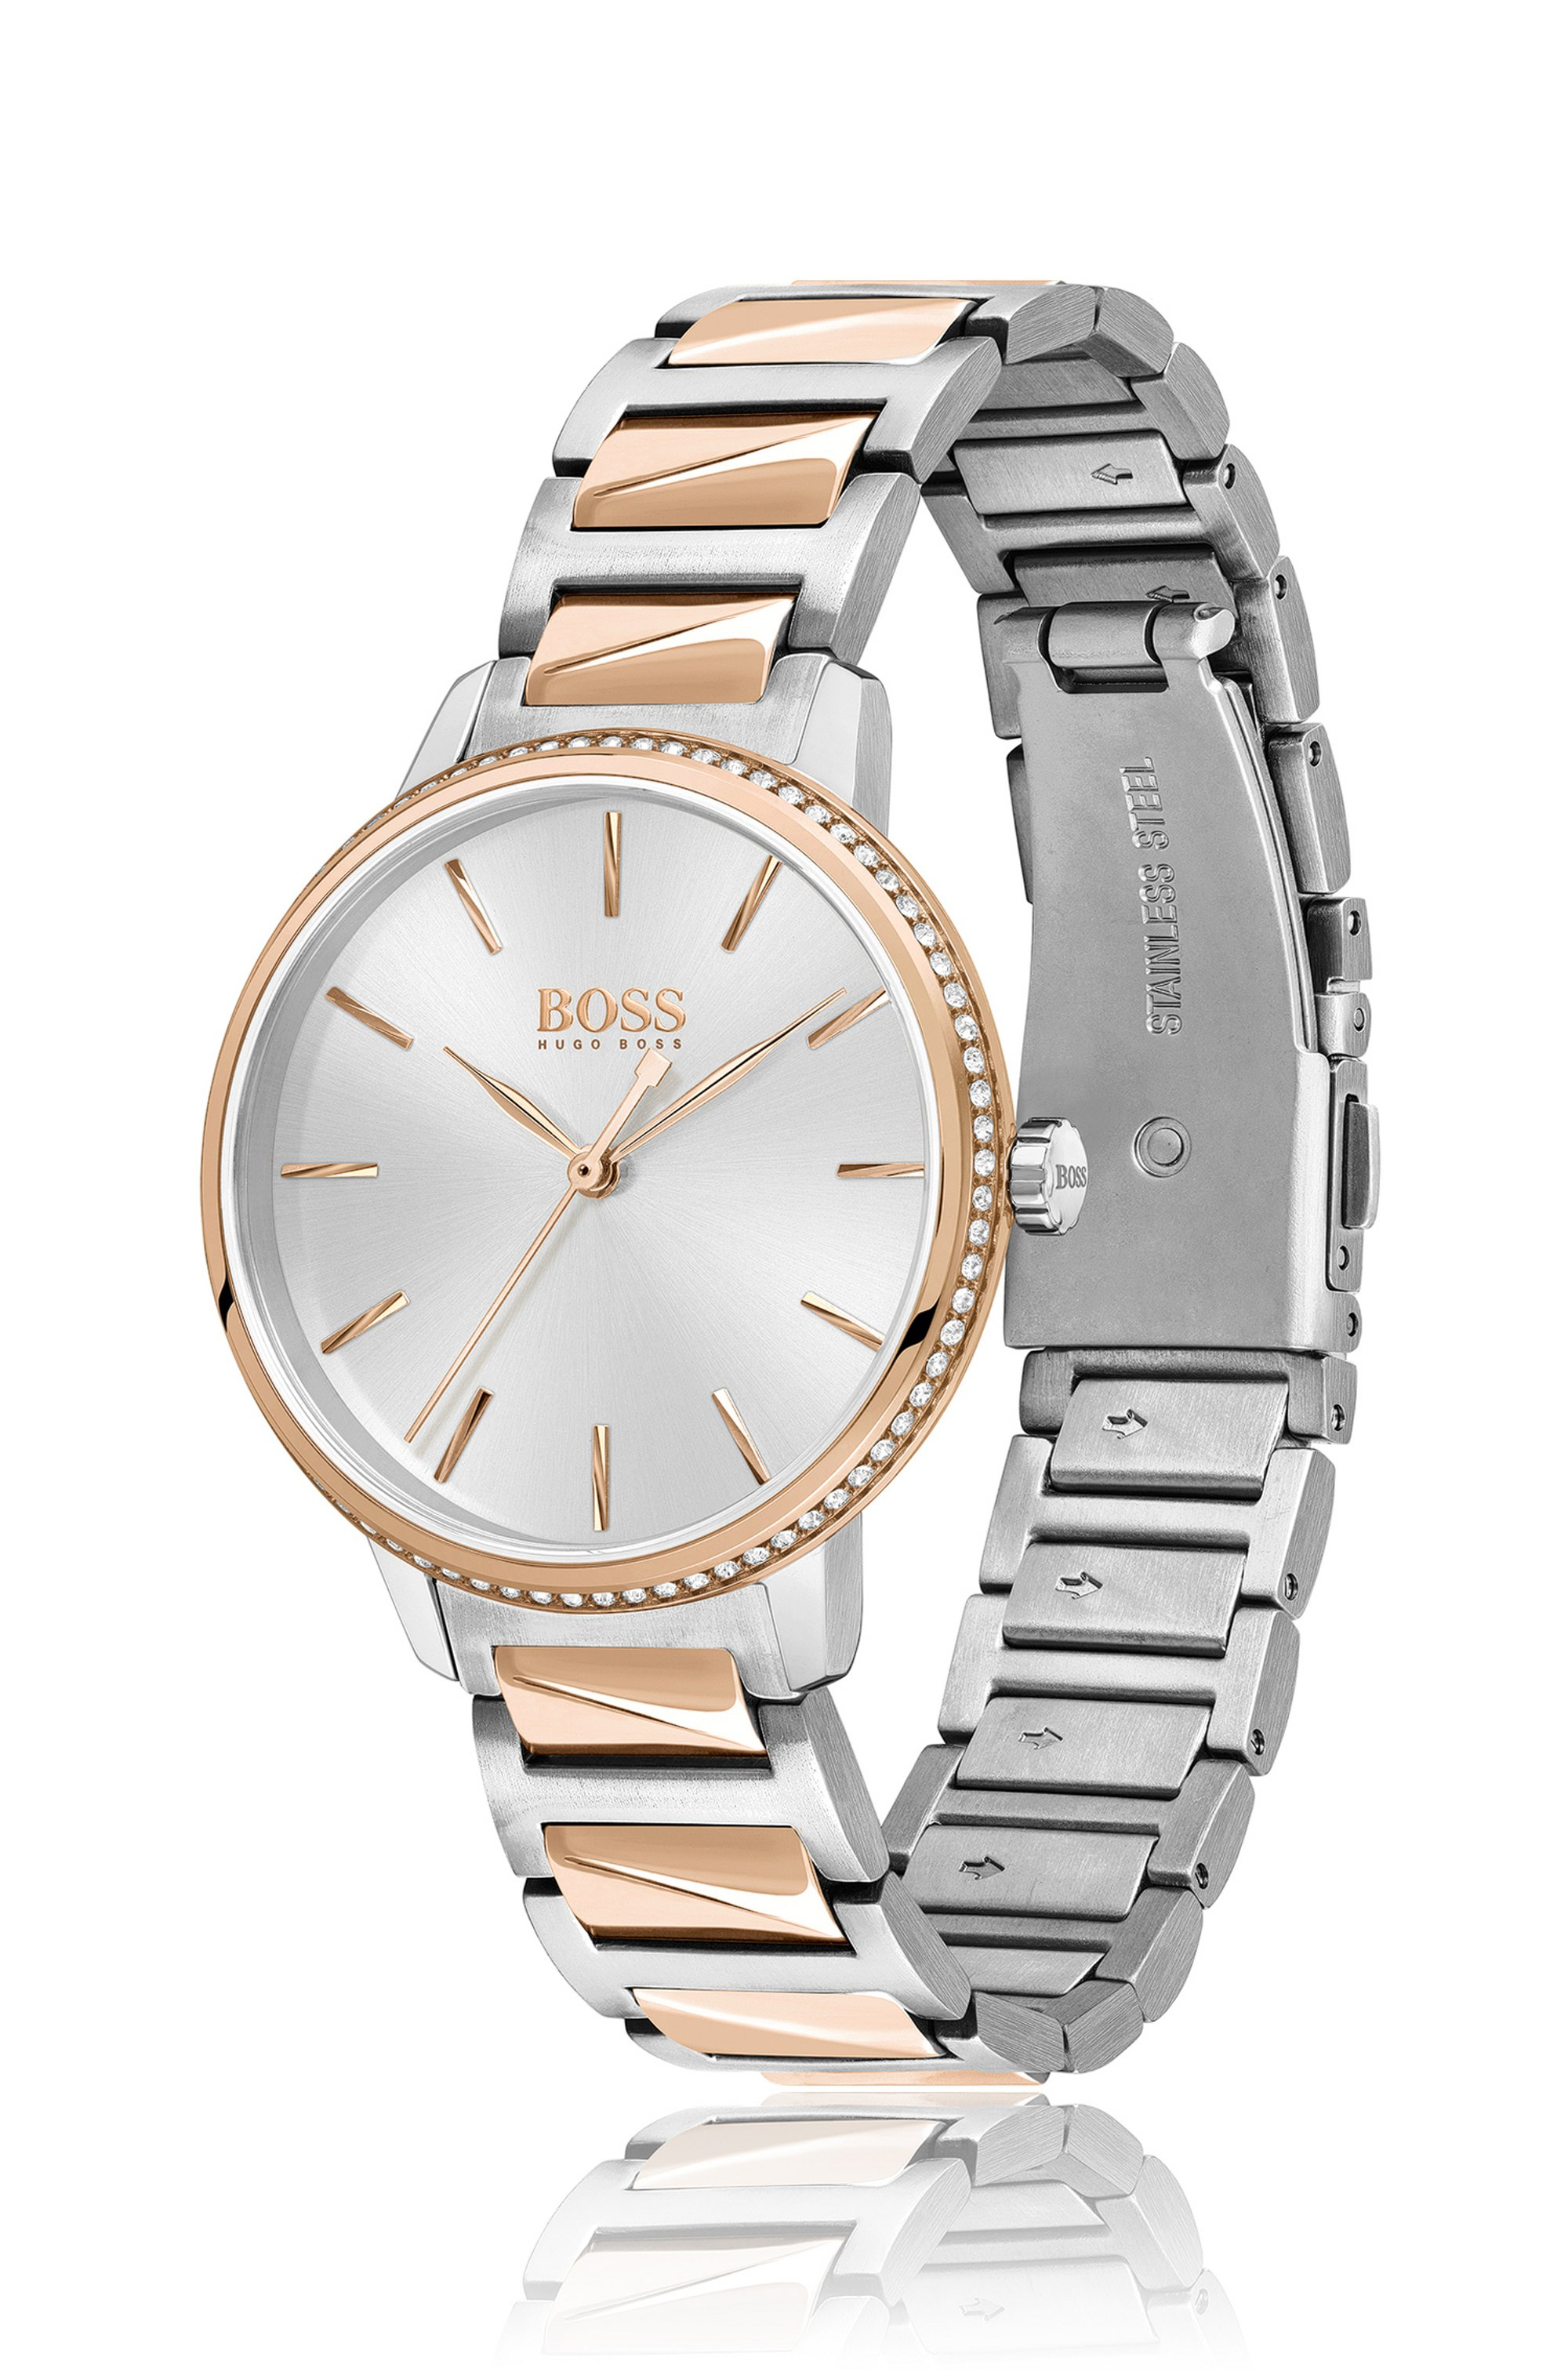 Two-tone watch with trimmed bezel